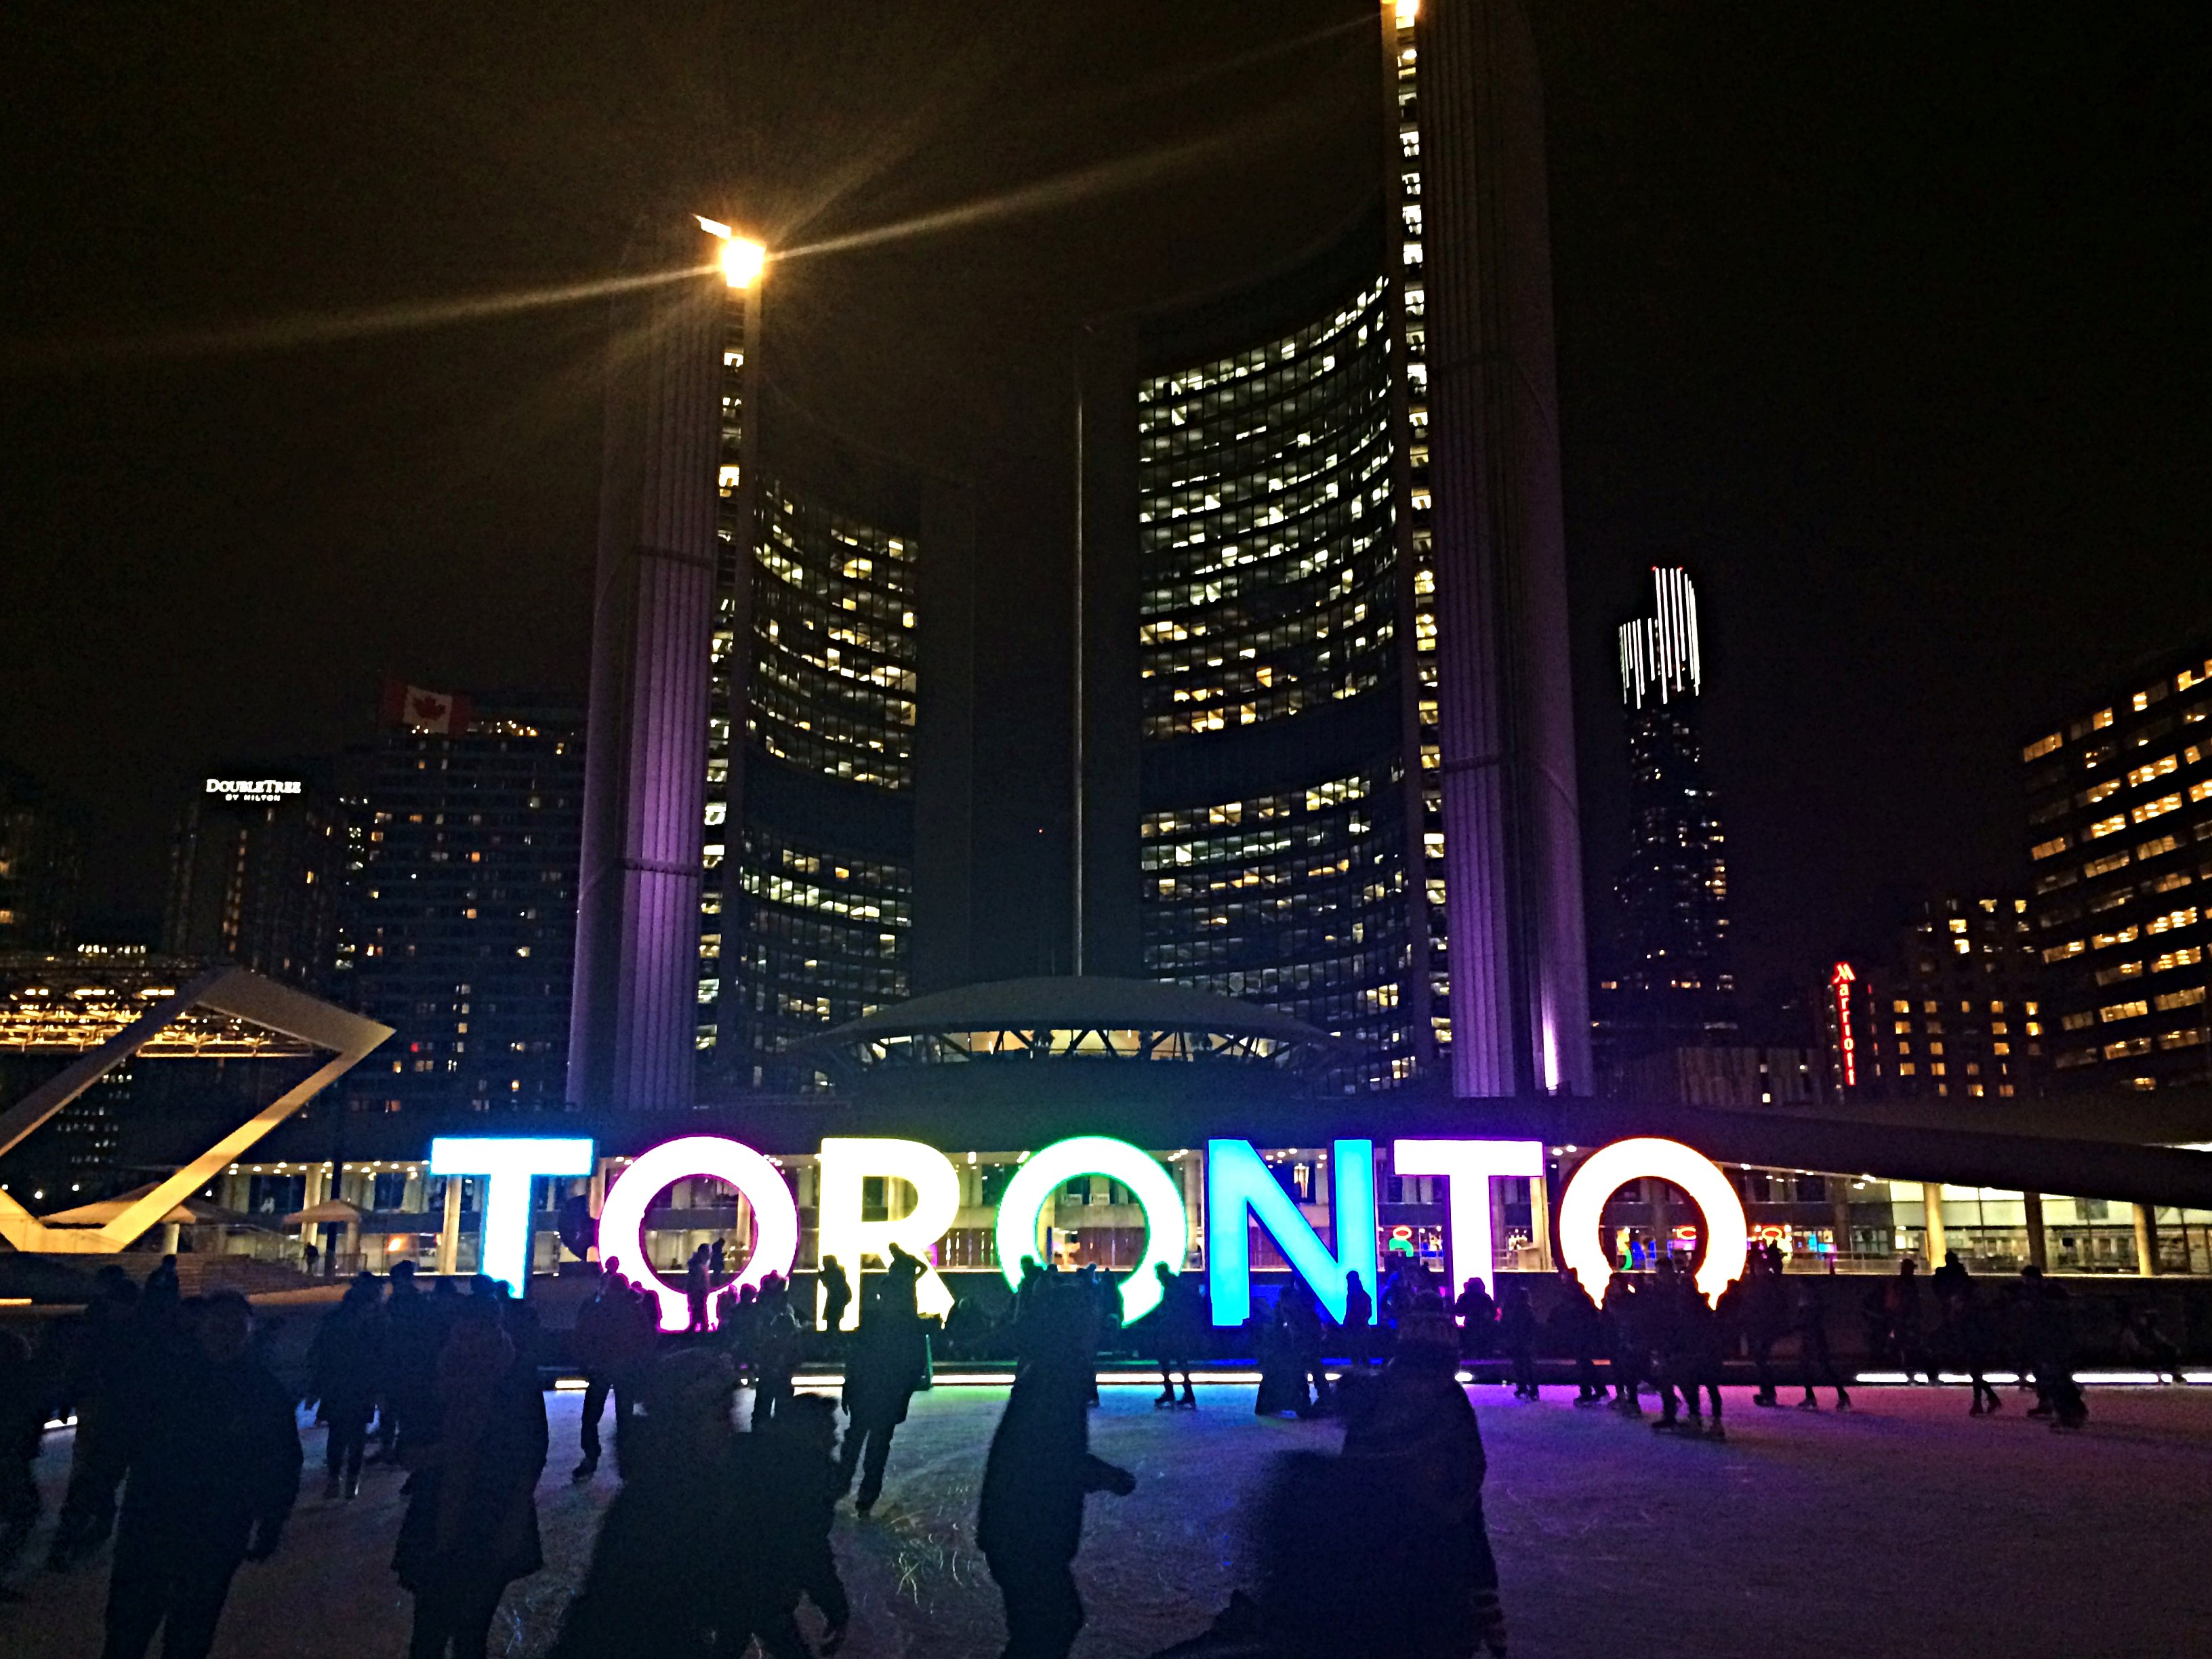 A picture of the Toronto sign in Nathan Philips Square